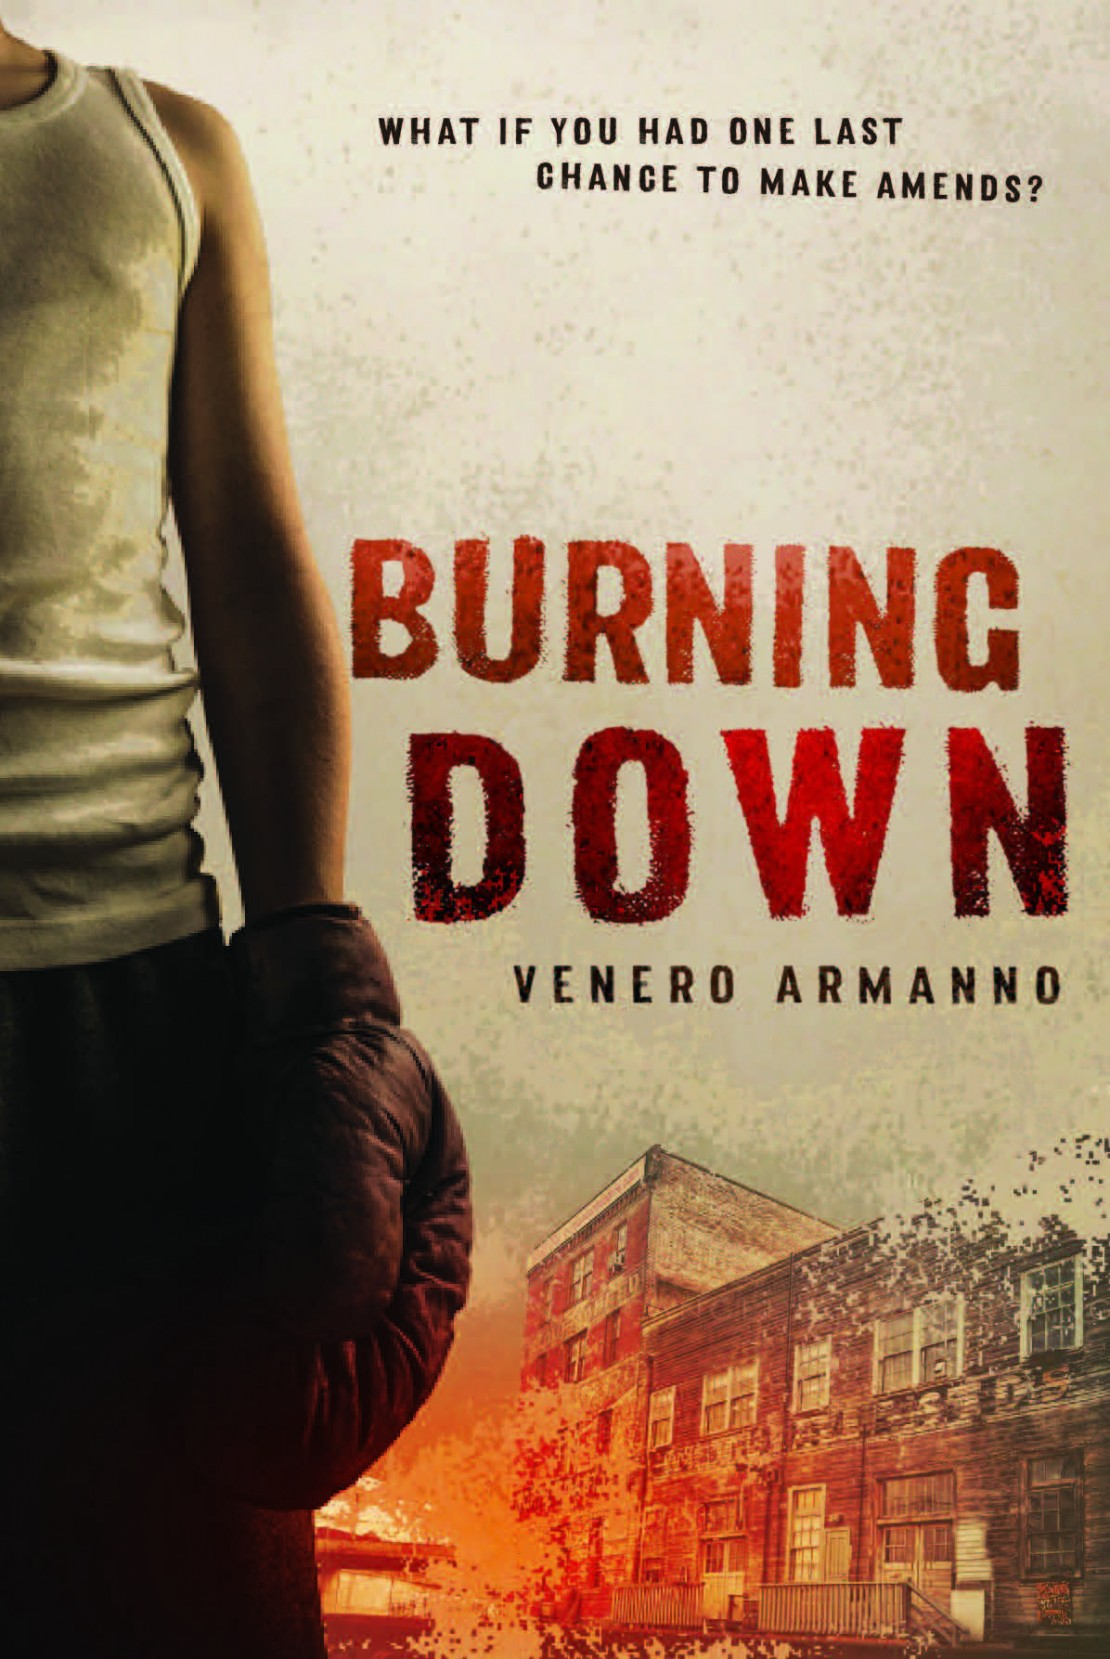 Burning Down by Veny Armanno